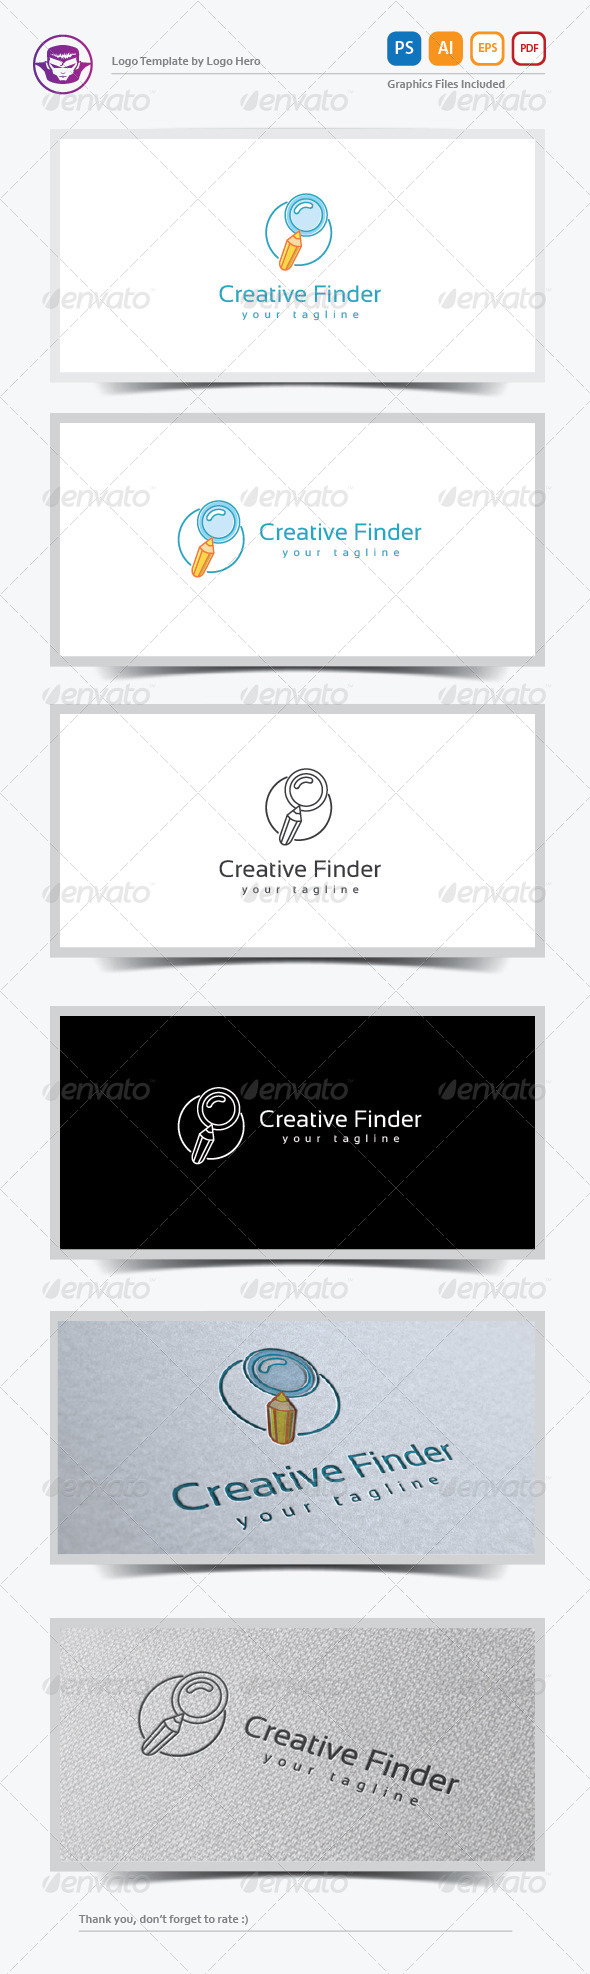 GraphicRiver Creative Finder Logo Template 8161097